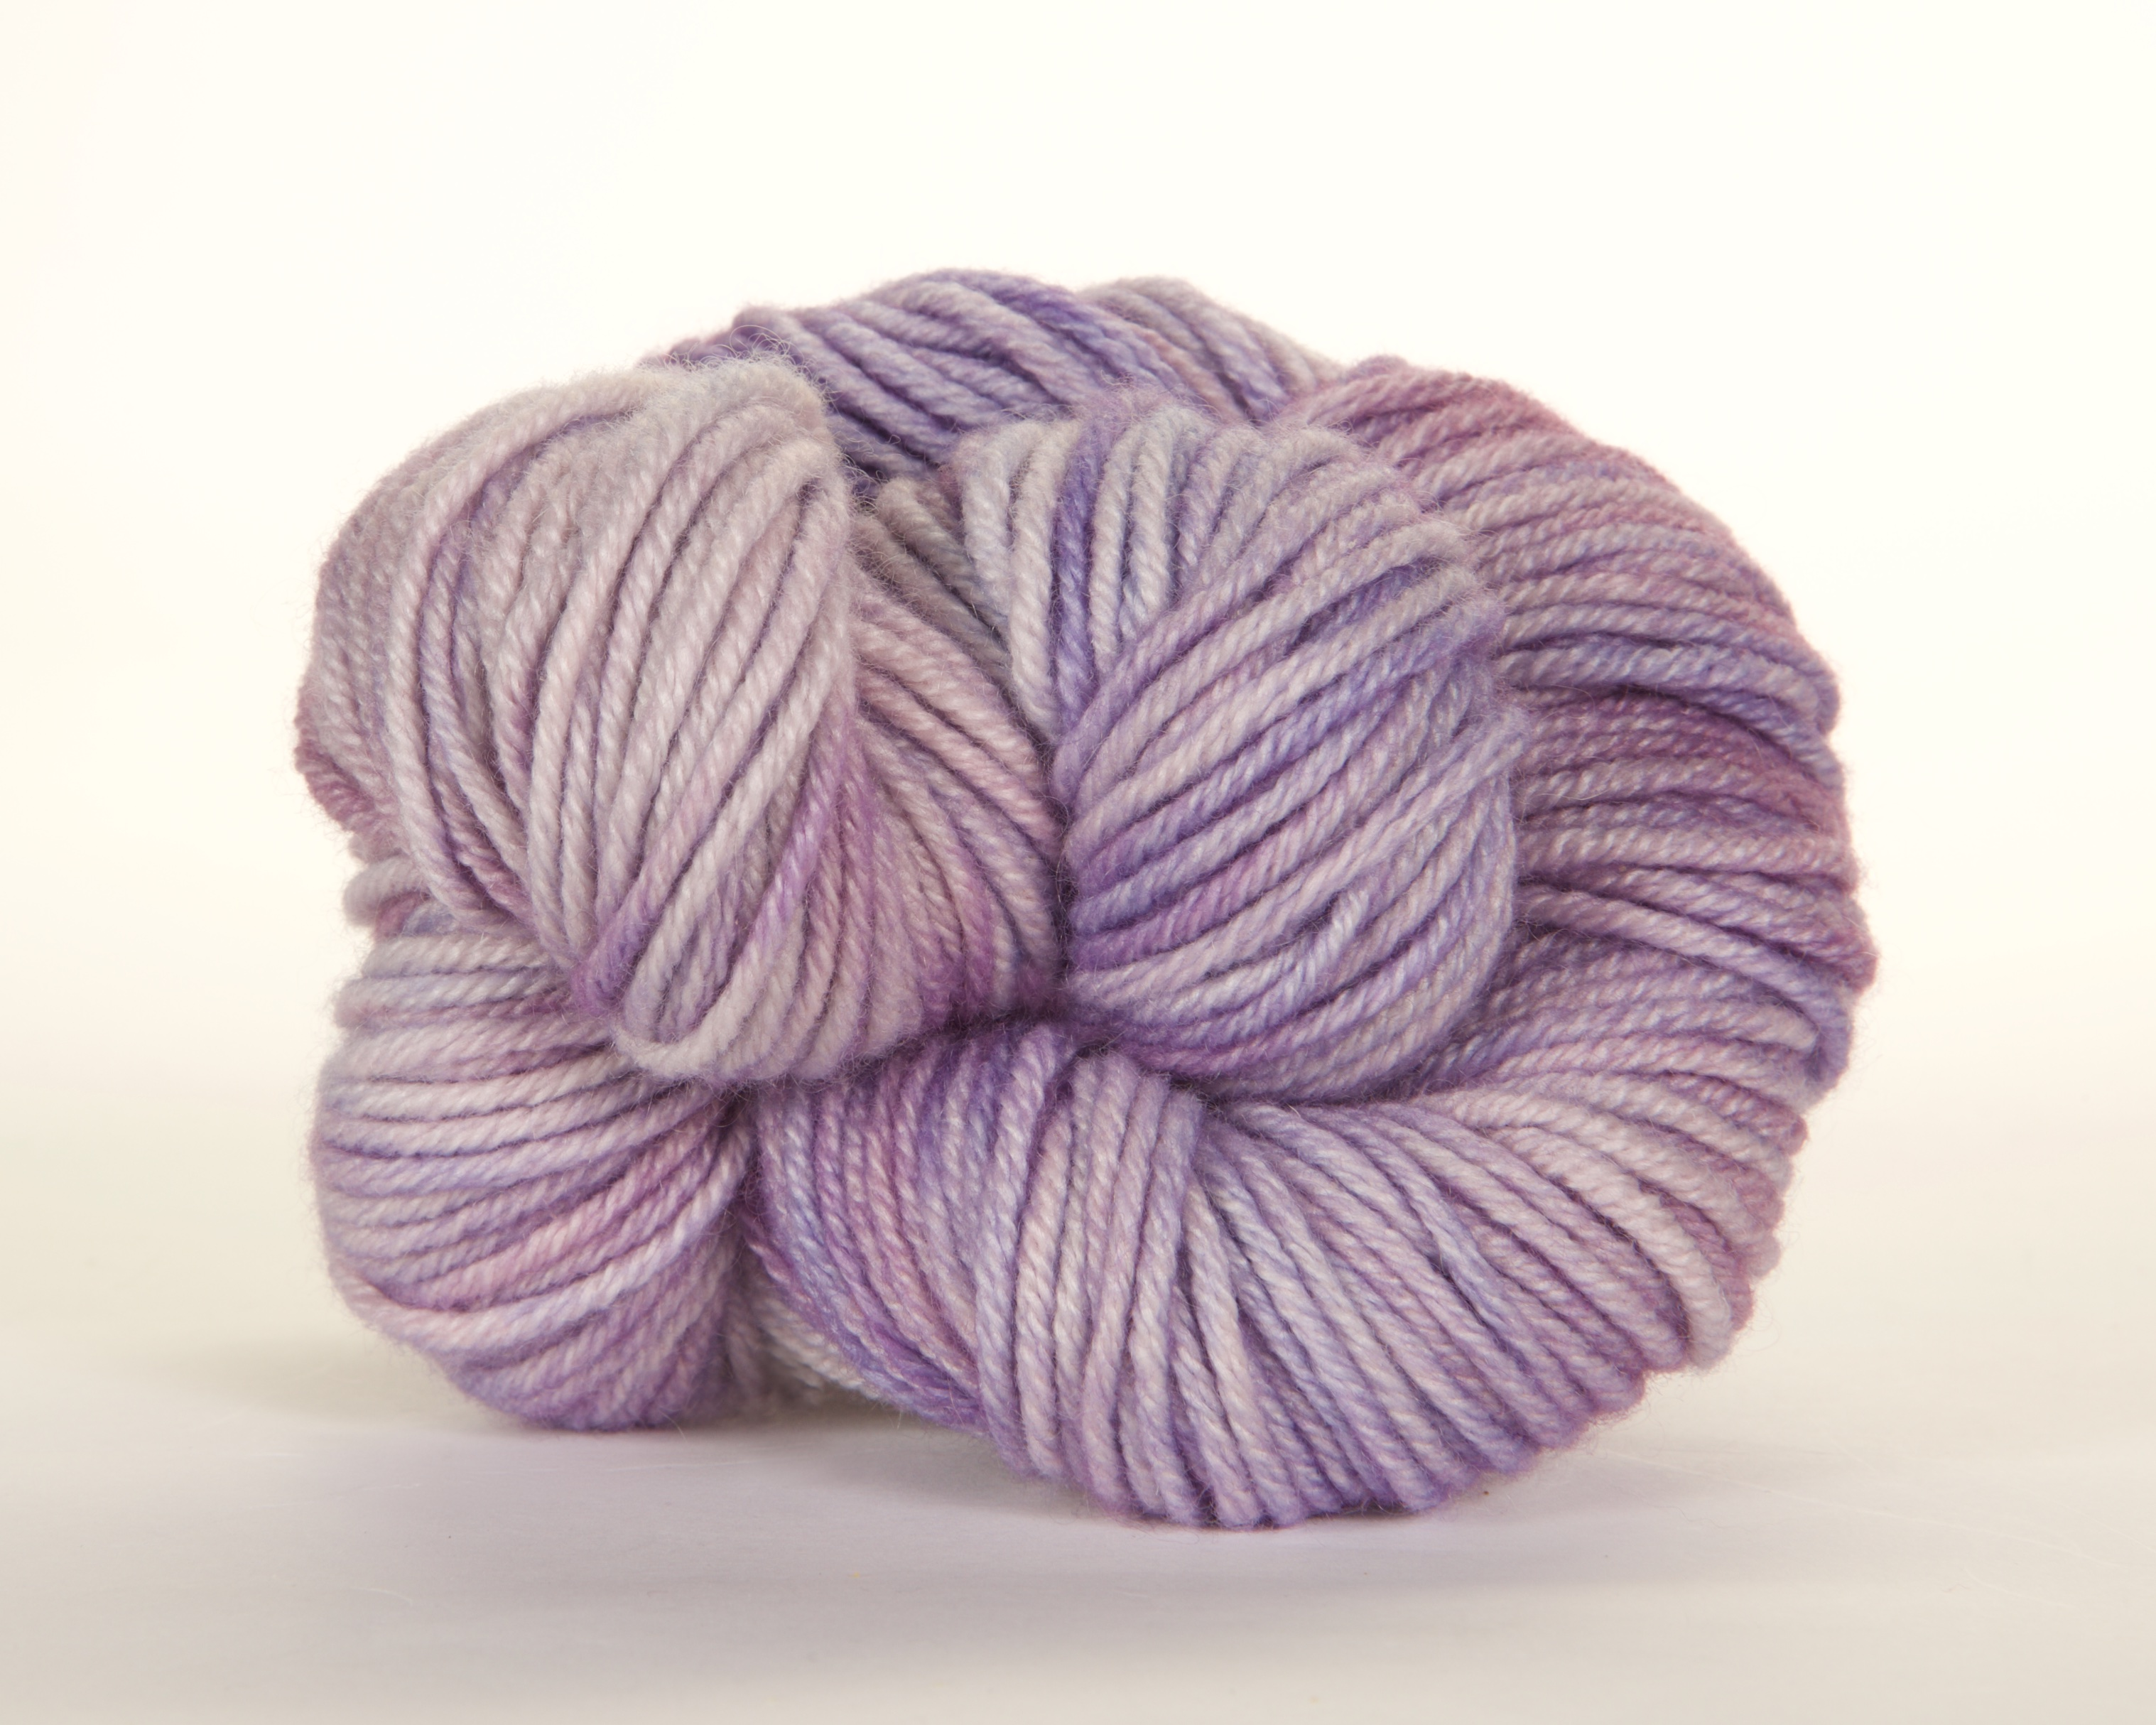 Colorways-203-Margery-Daw, Margery Daw